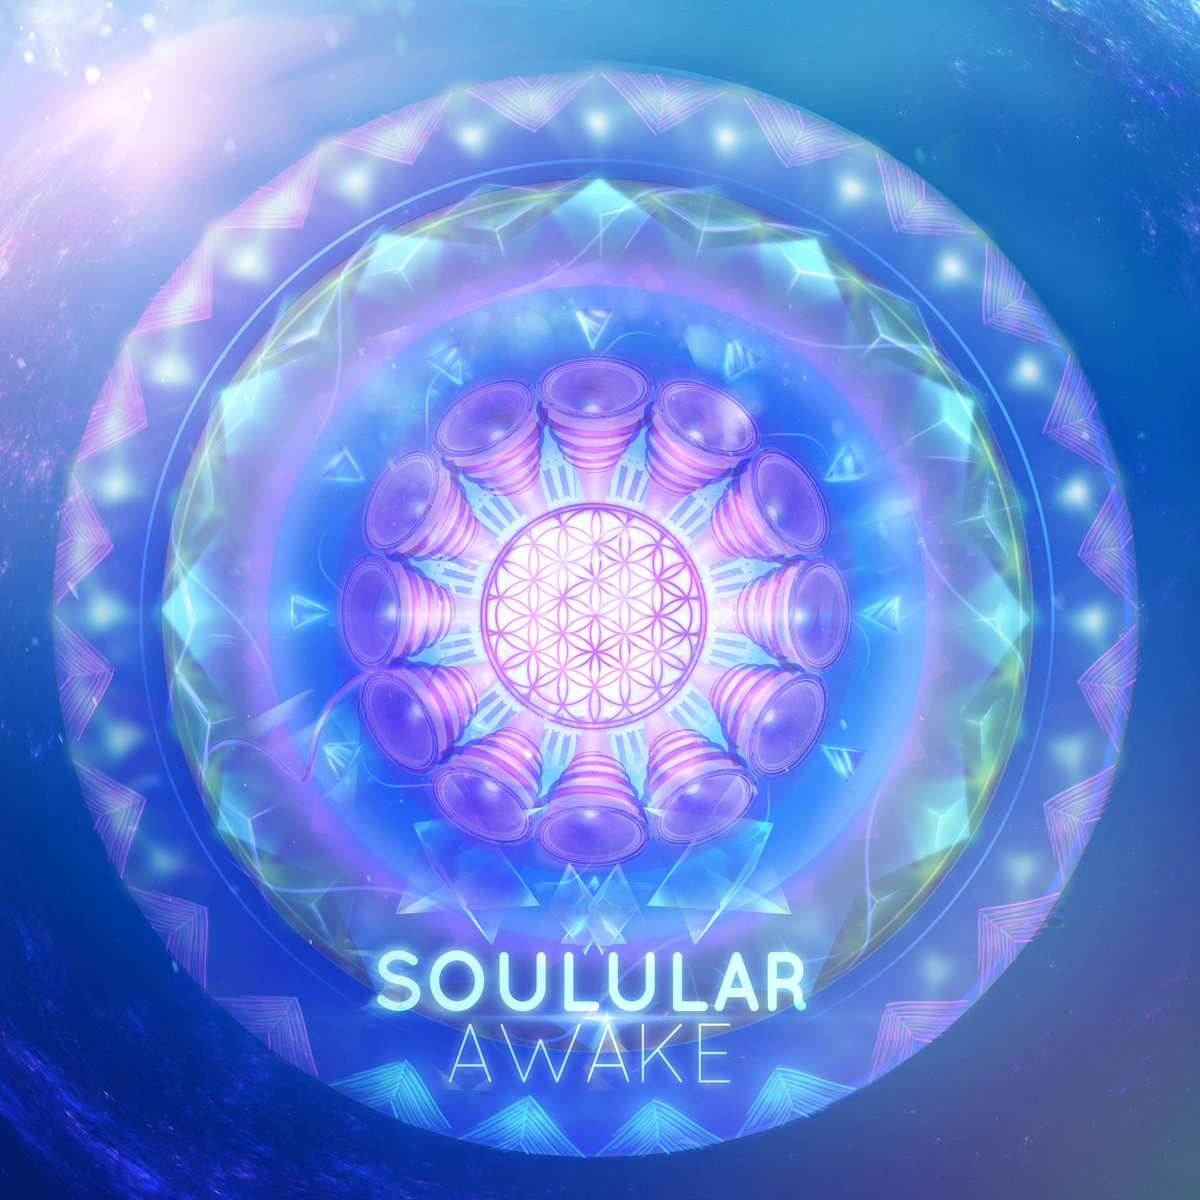 Soulular - Awake @ 'AWAKE' album (los angeles, chill)